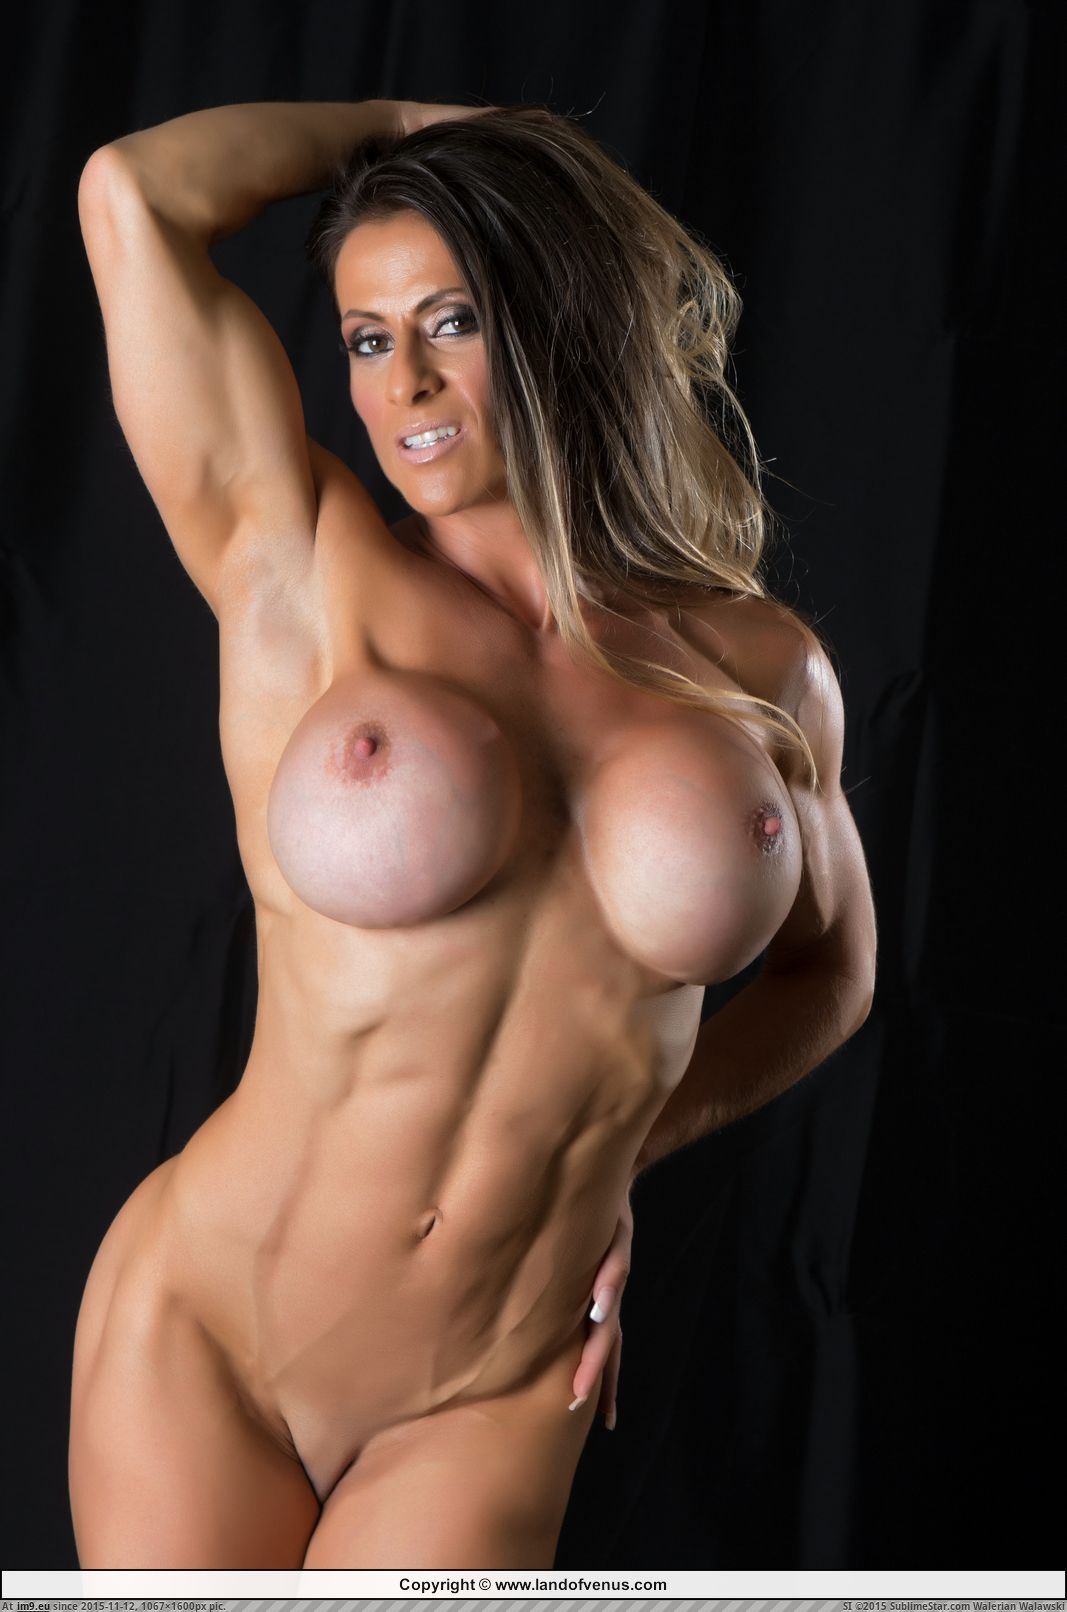 Big boob athletes naked